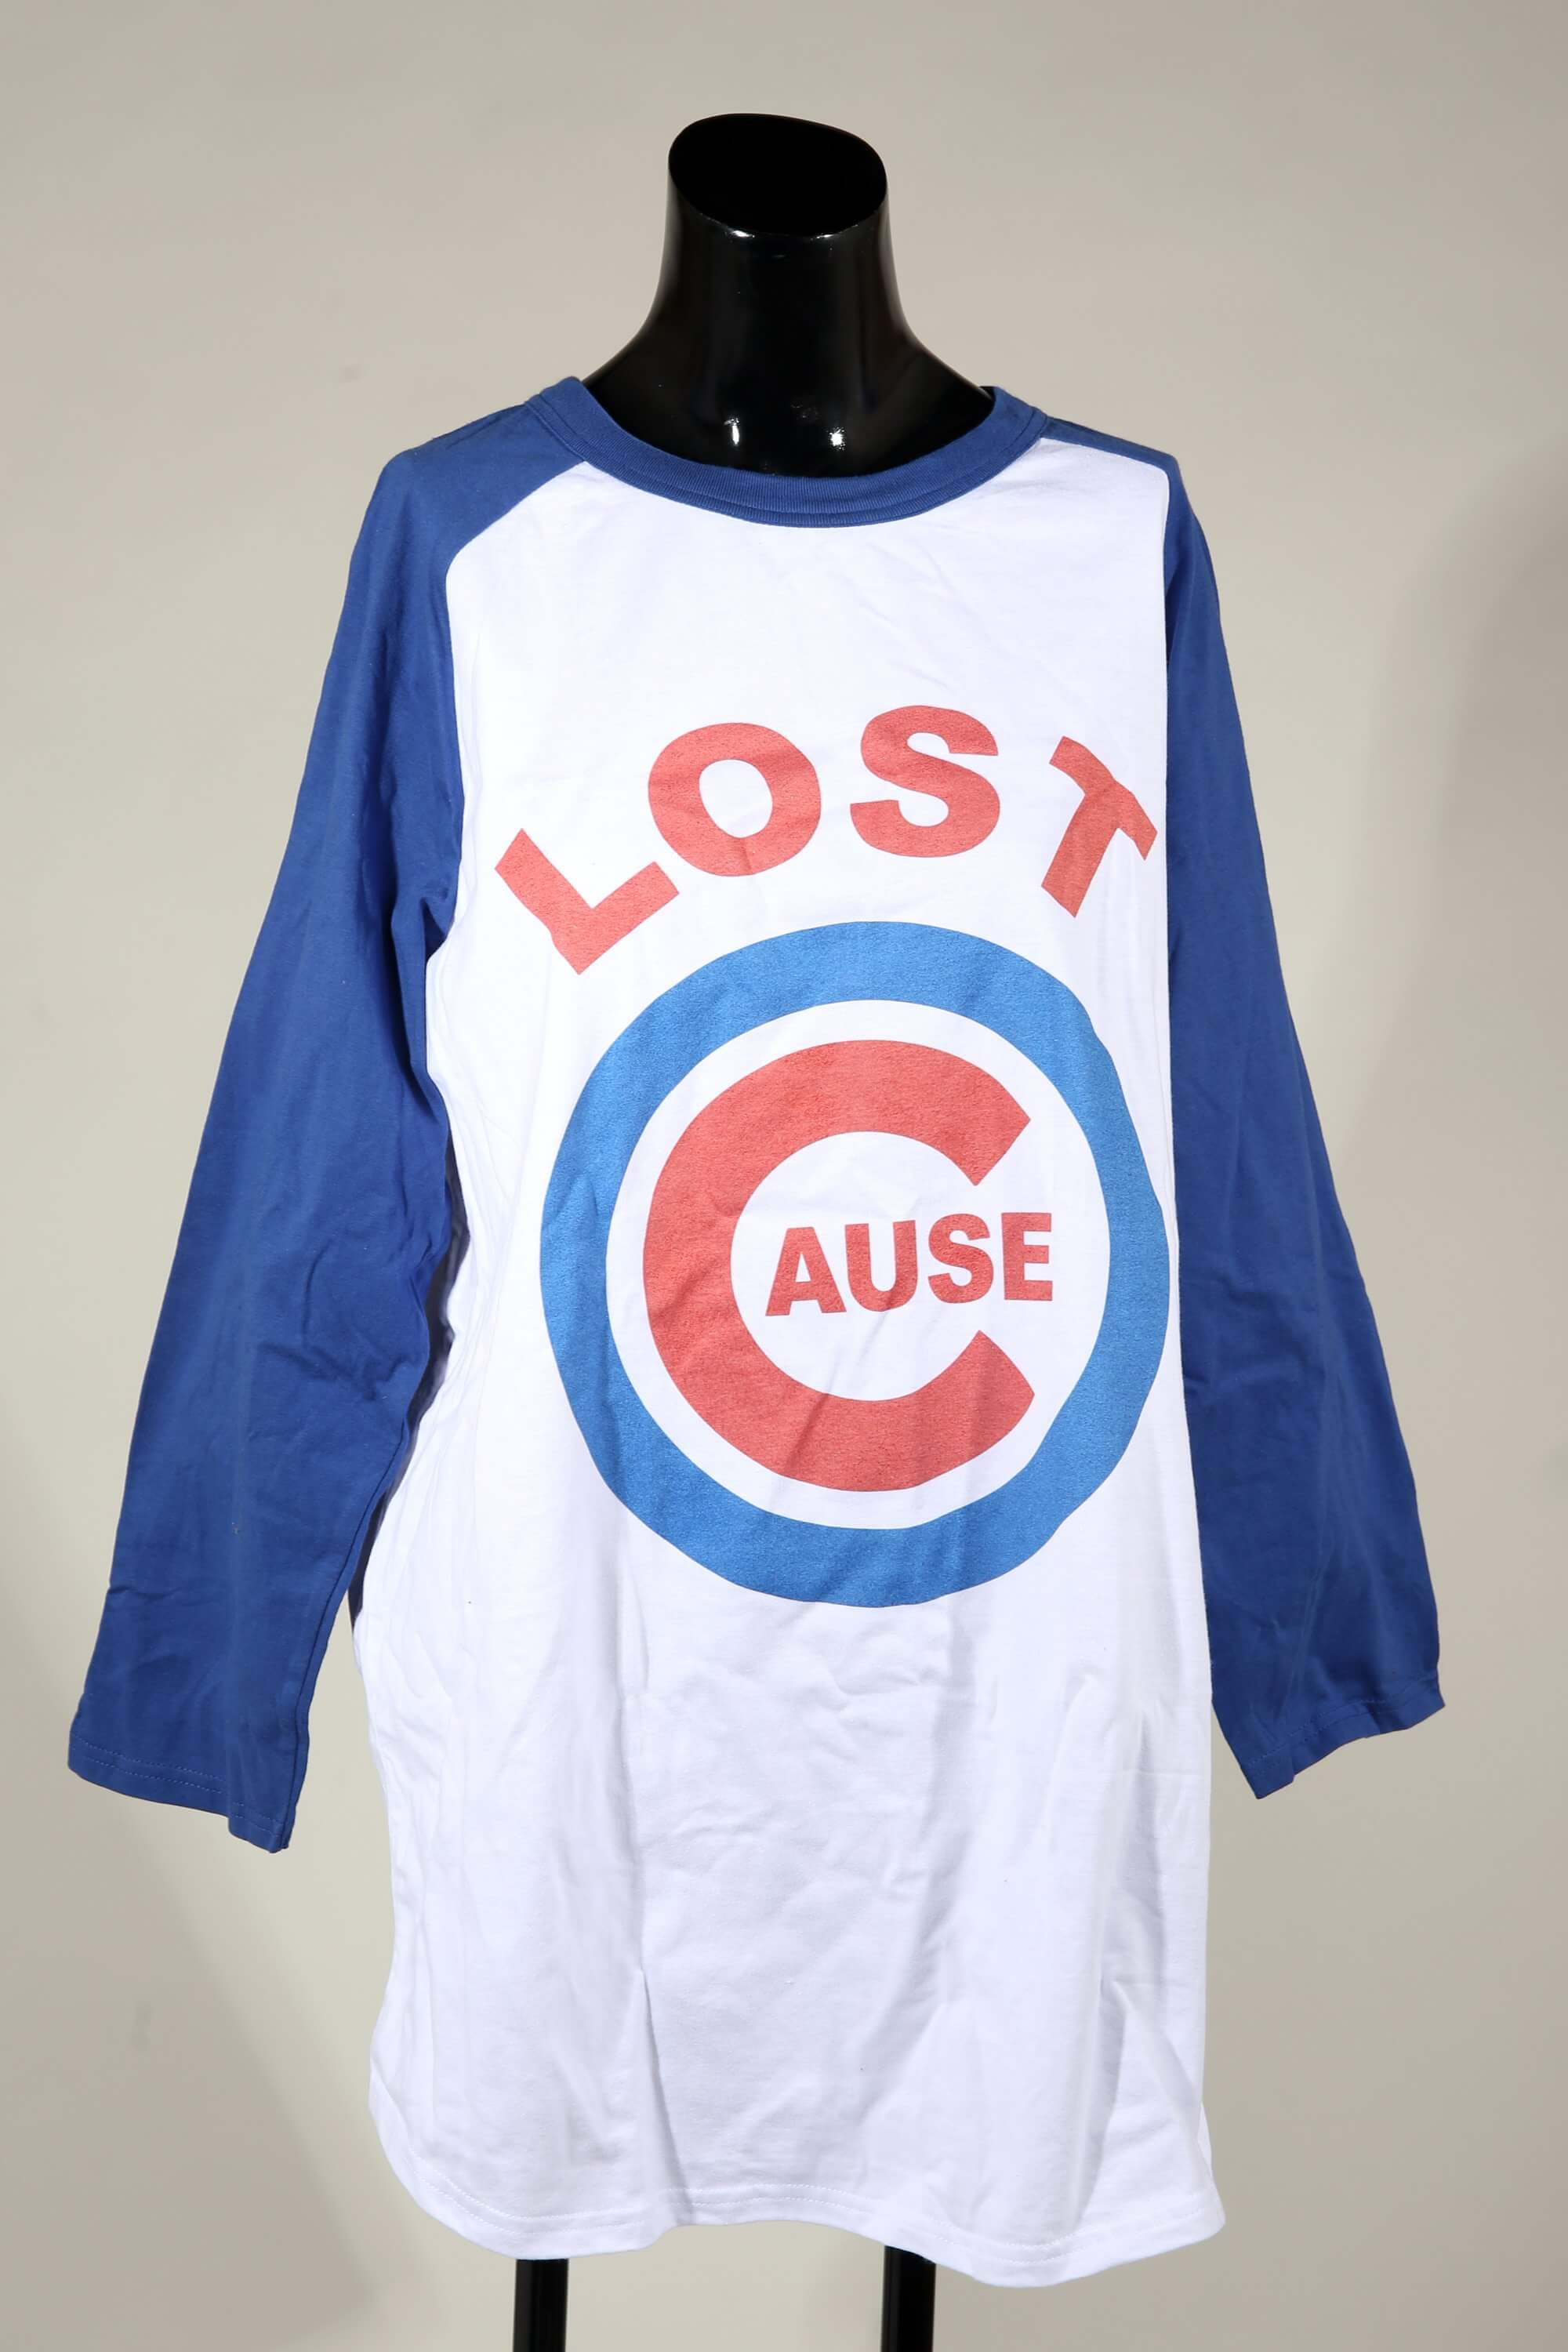 Lost cause T-shirt